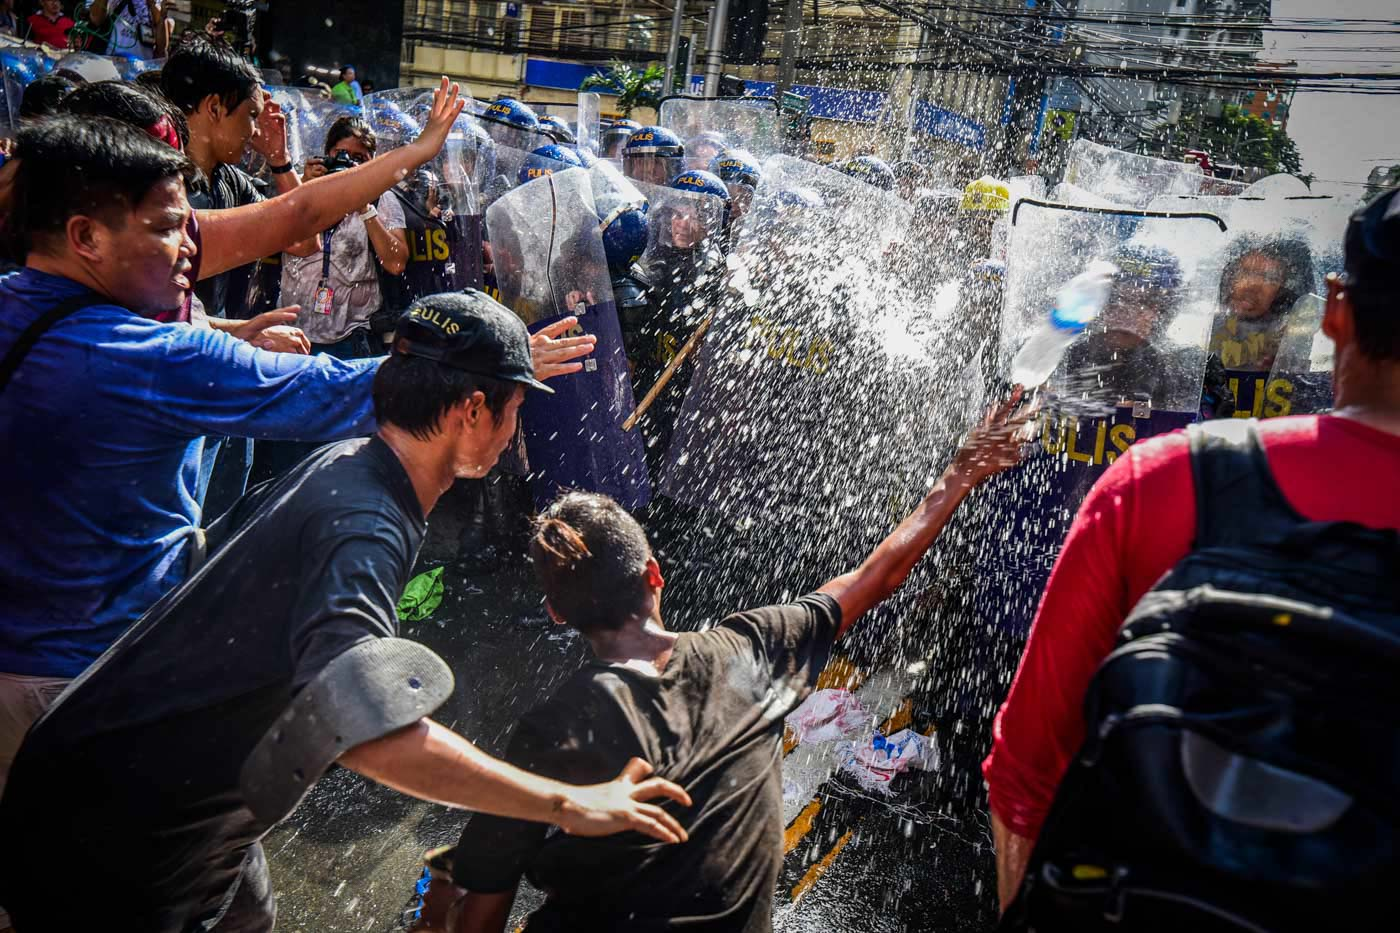 STAND OFF. The police later on used water cannons on the protesters. Photo by Alecs Ongcal/Rappler